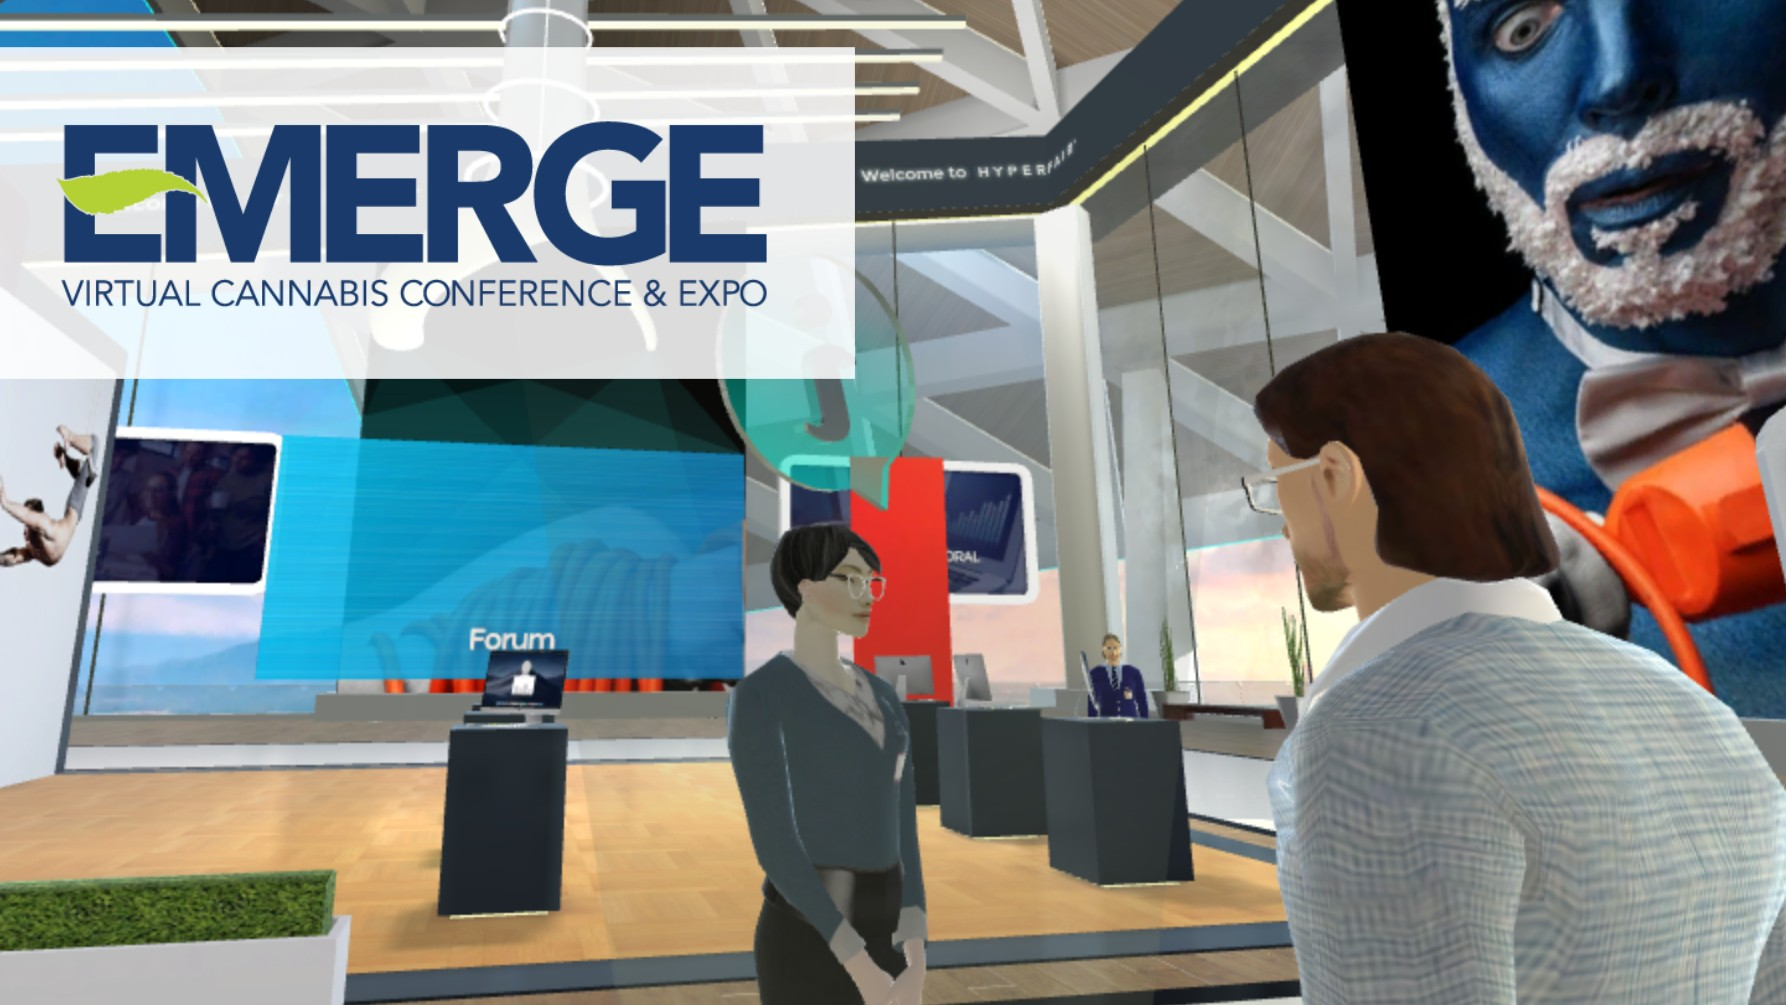 The Emerge 3D Virtual Conference & Expo